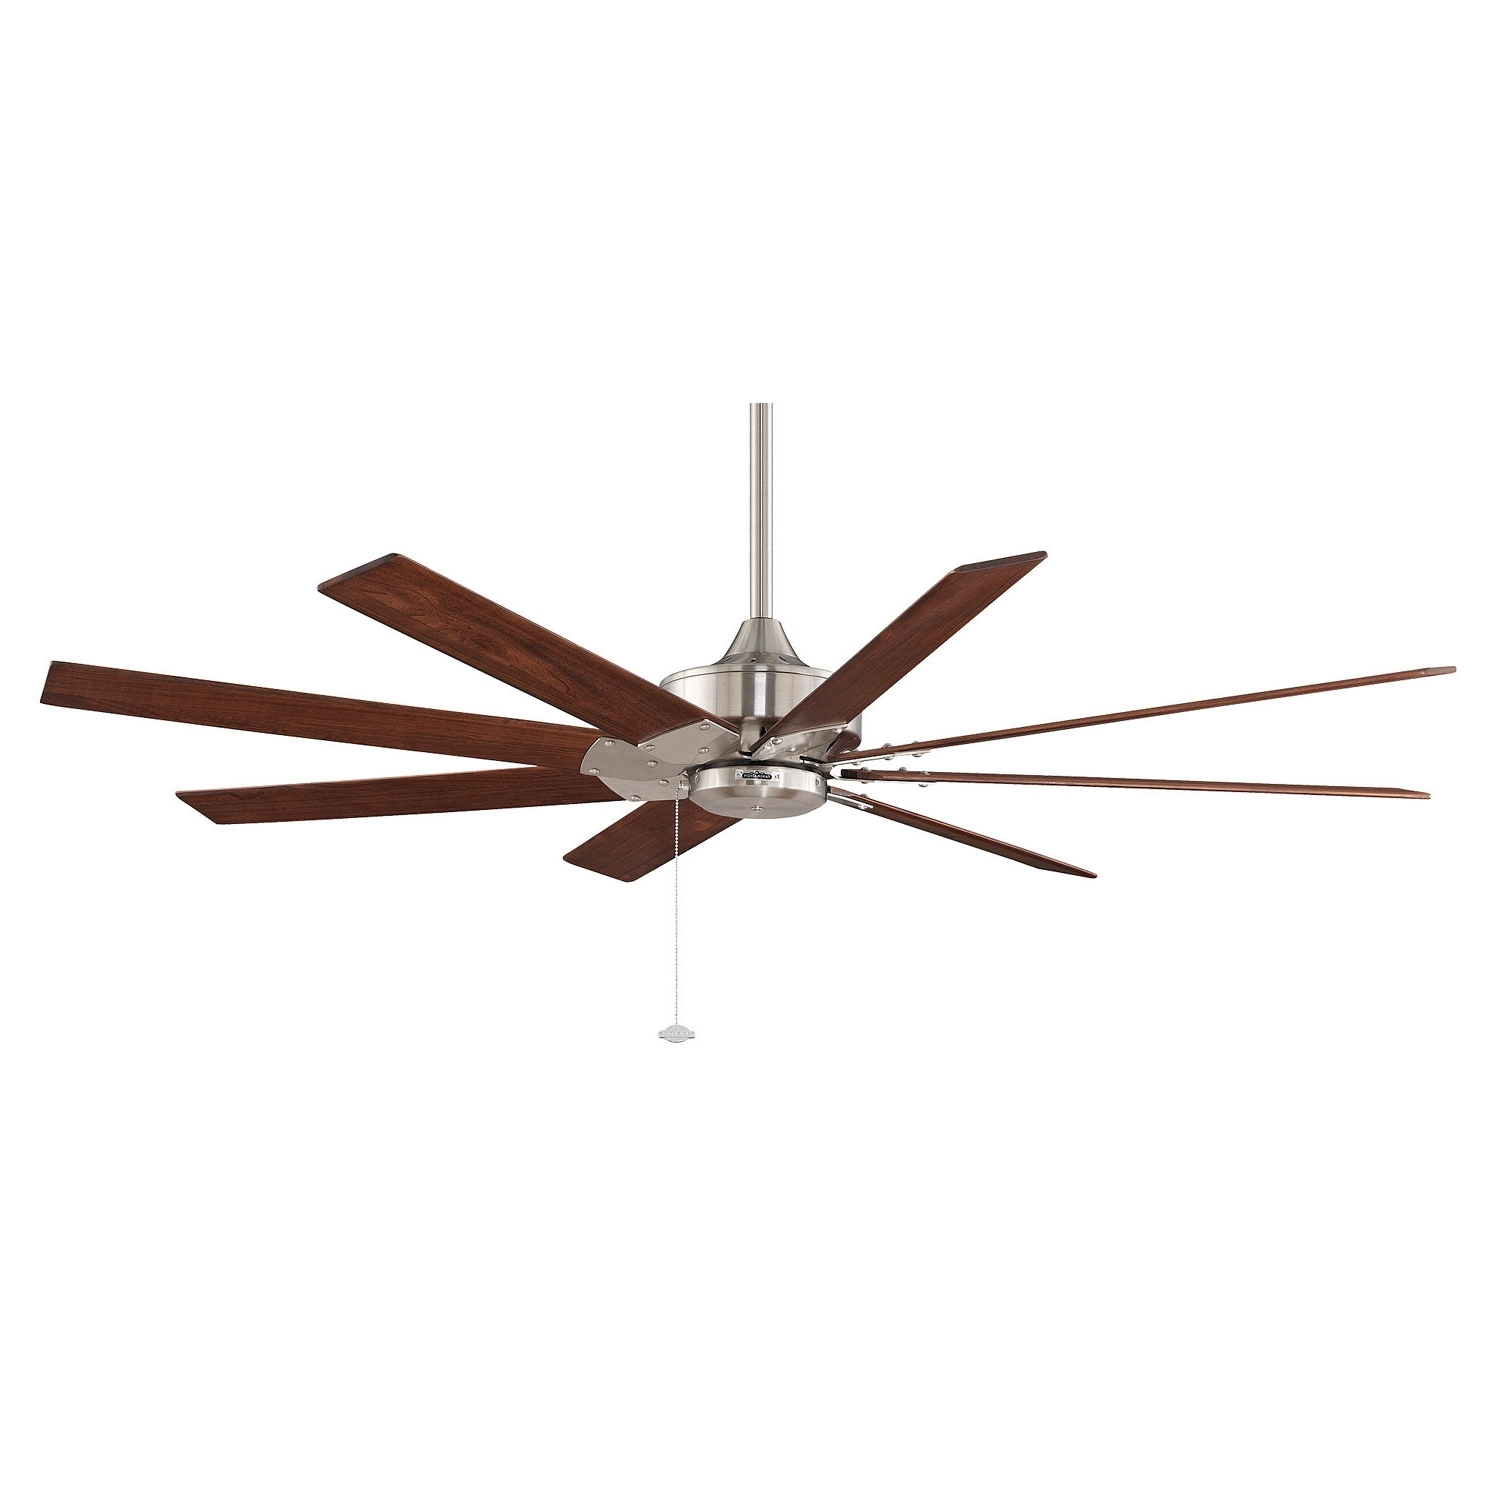 Most Recent Commercial Outdoor Ceiling Fans Regarding Fanimation Levon Brushed Nickel 63 Inch Energy Star Ceiling Fan With (View 19 of 20)